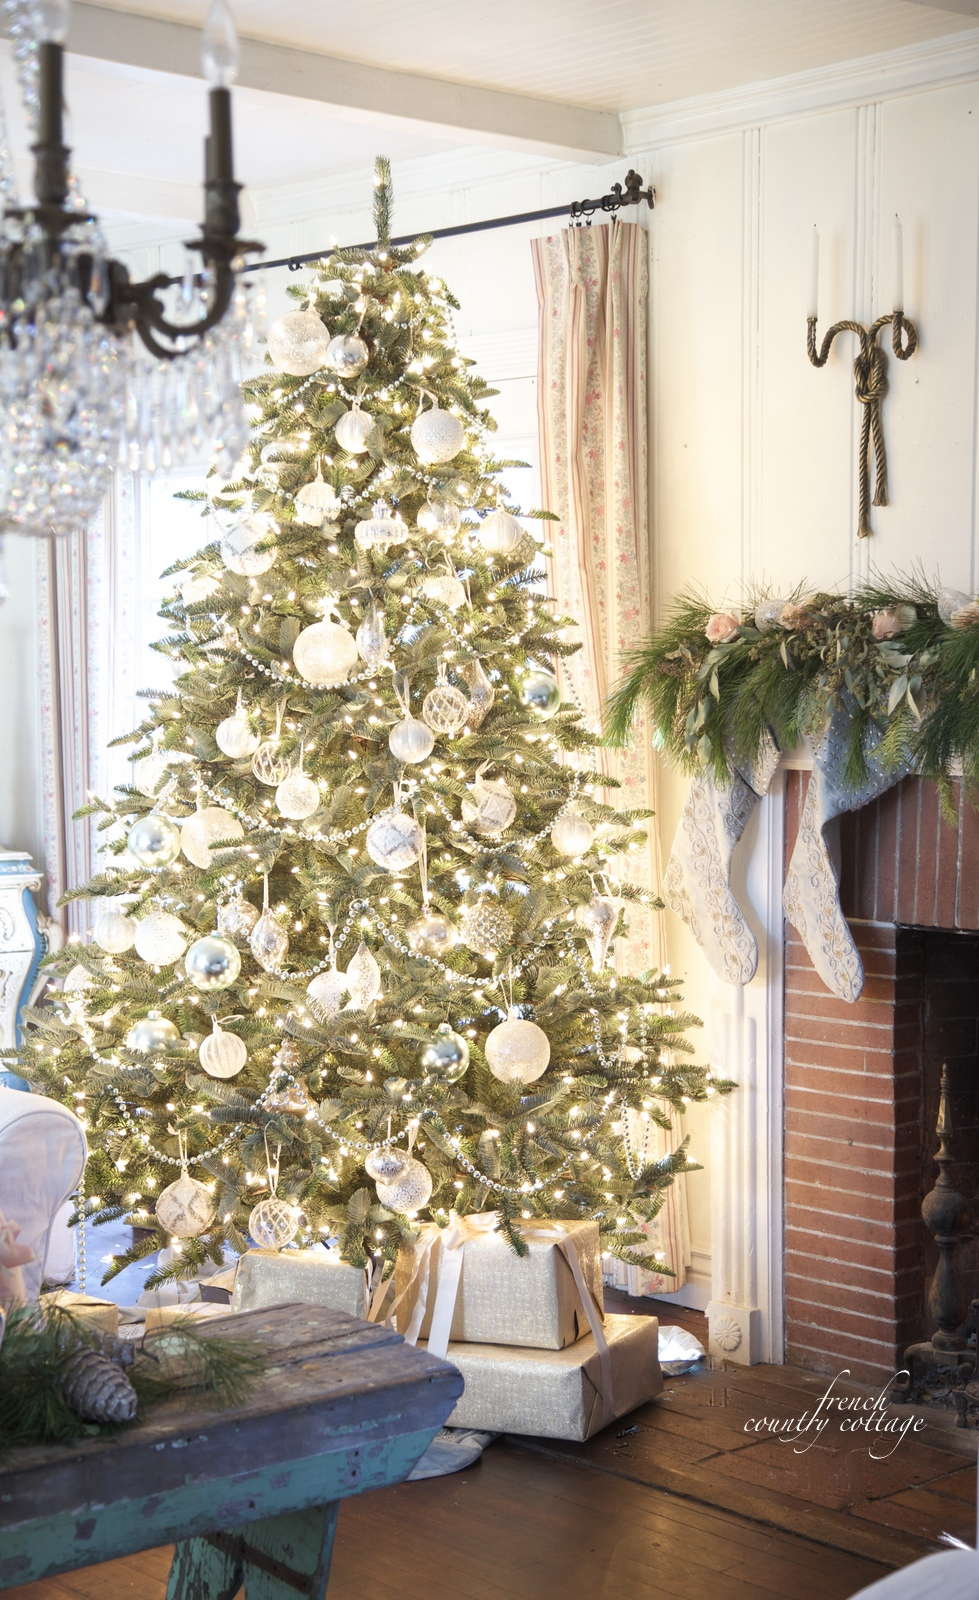 Christmas Homes french country cottage christmas home tour - french country cottage